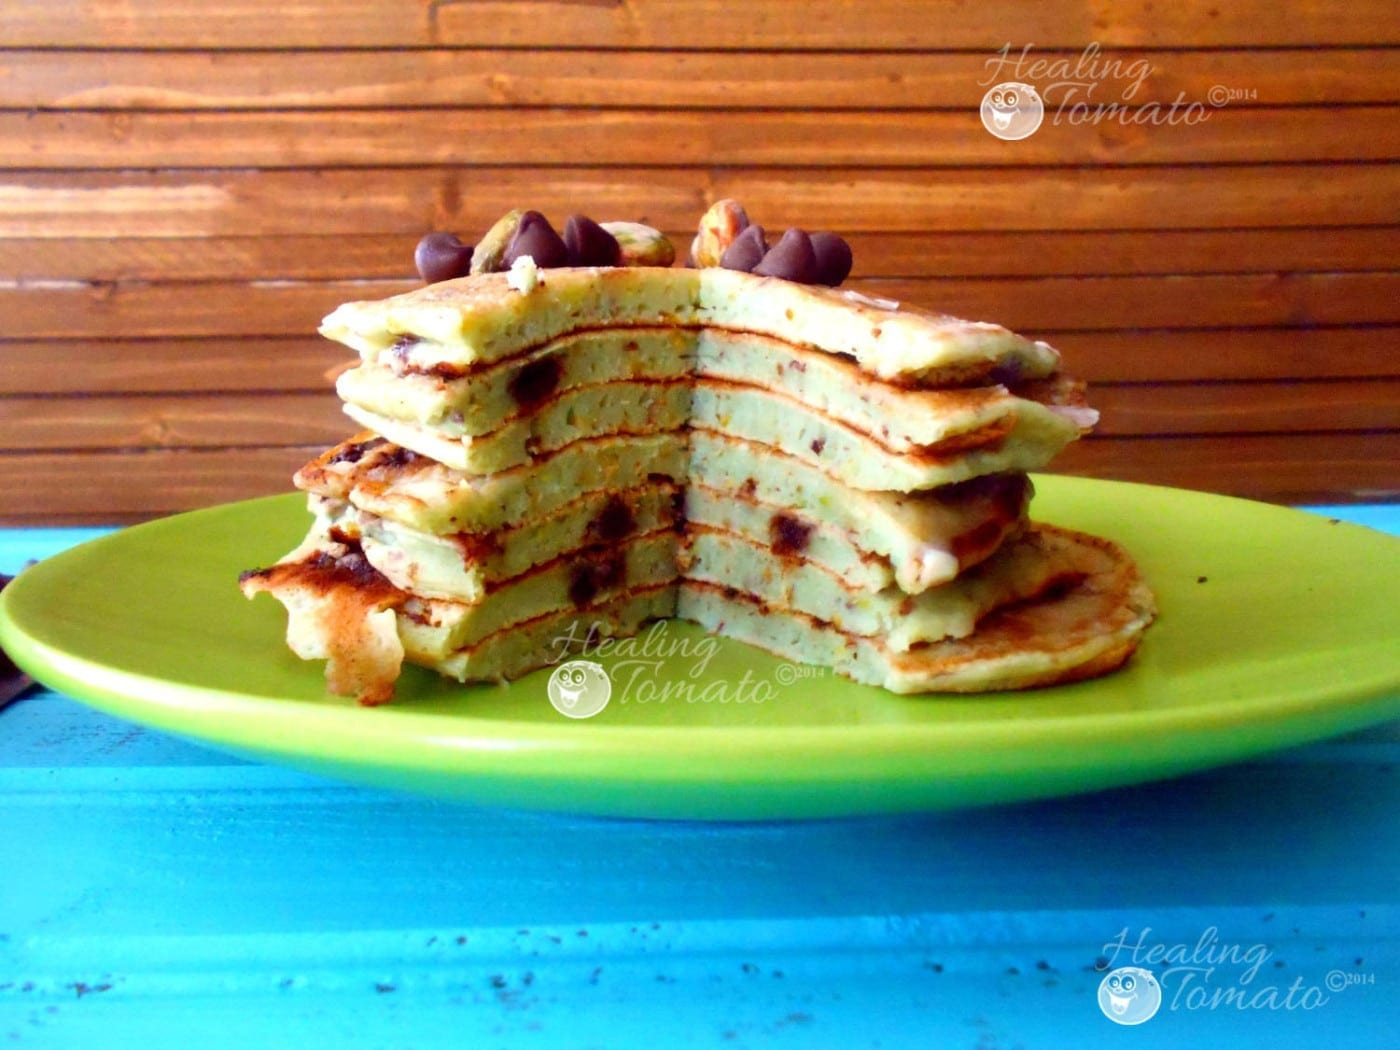 Front view of a section of a stack of vegan chocolate chip pancakes